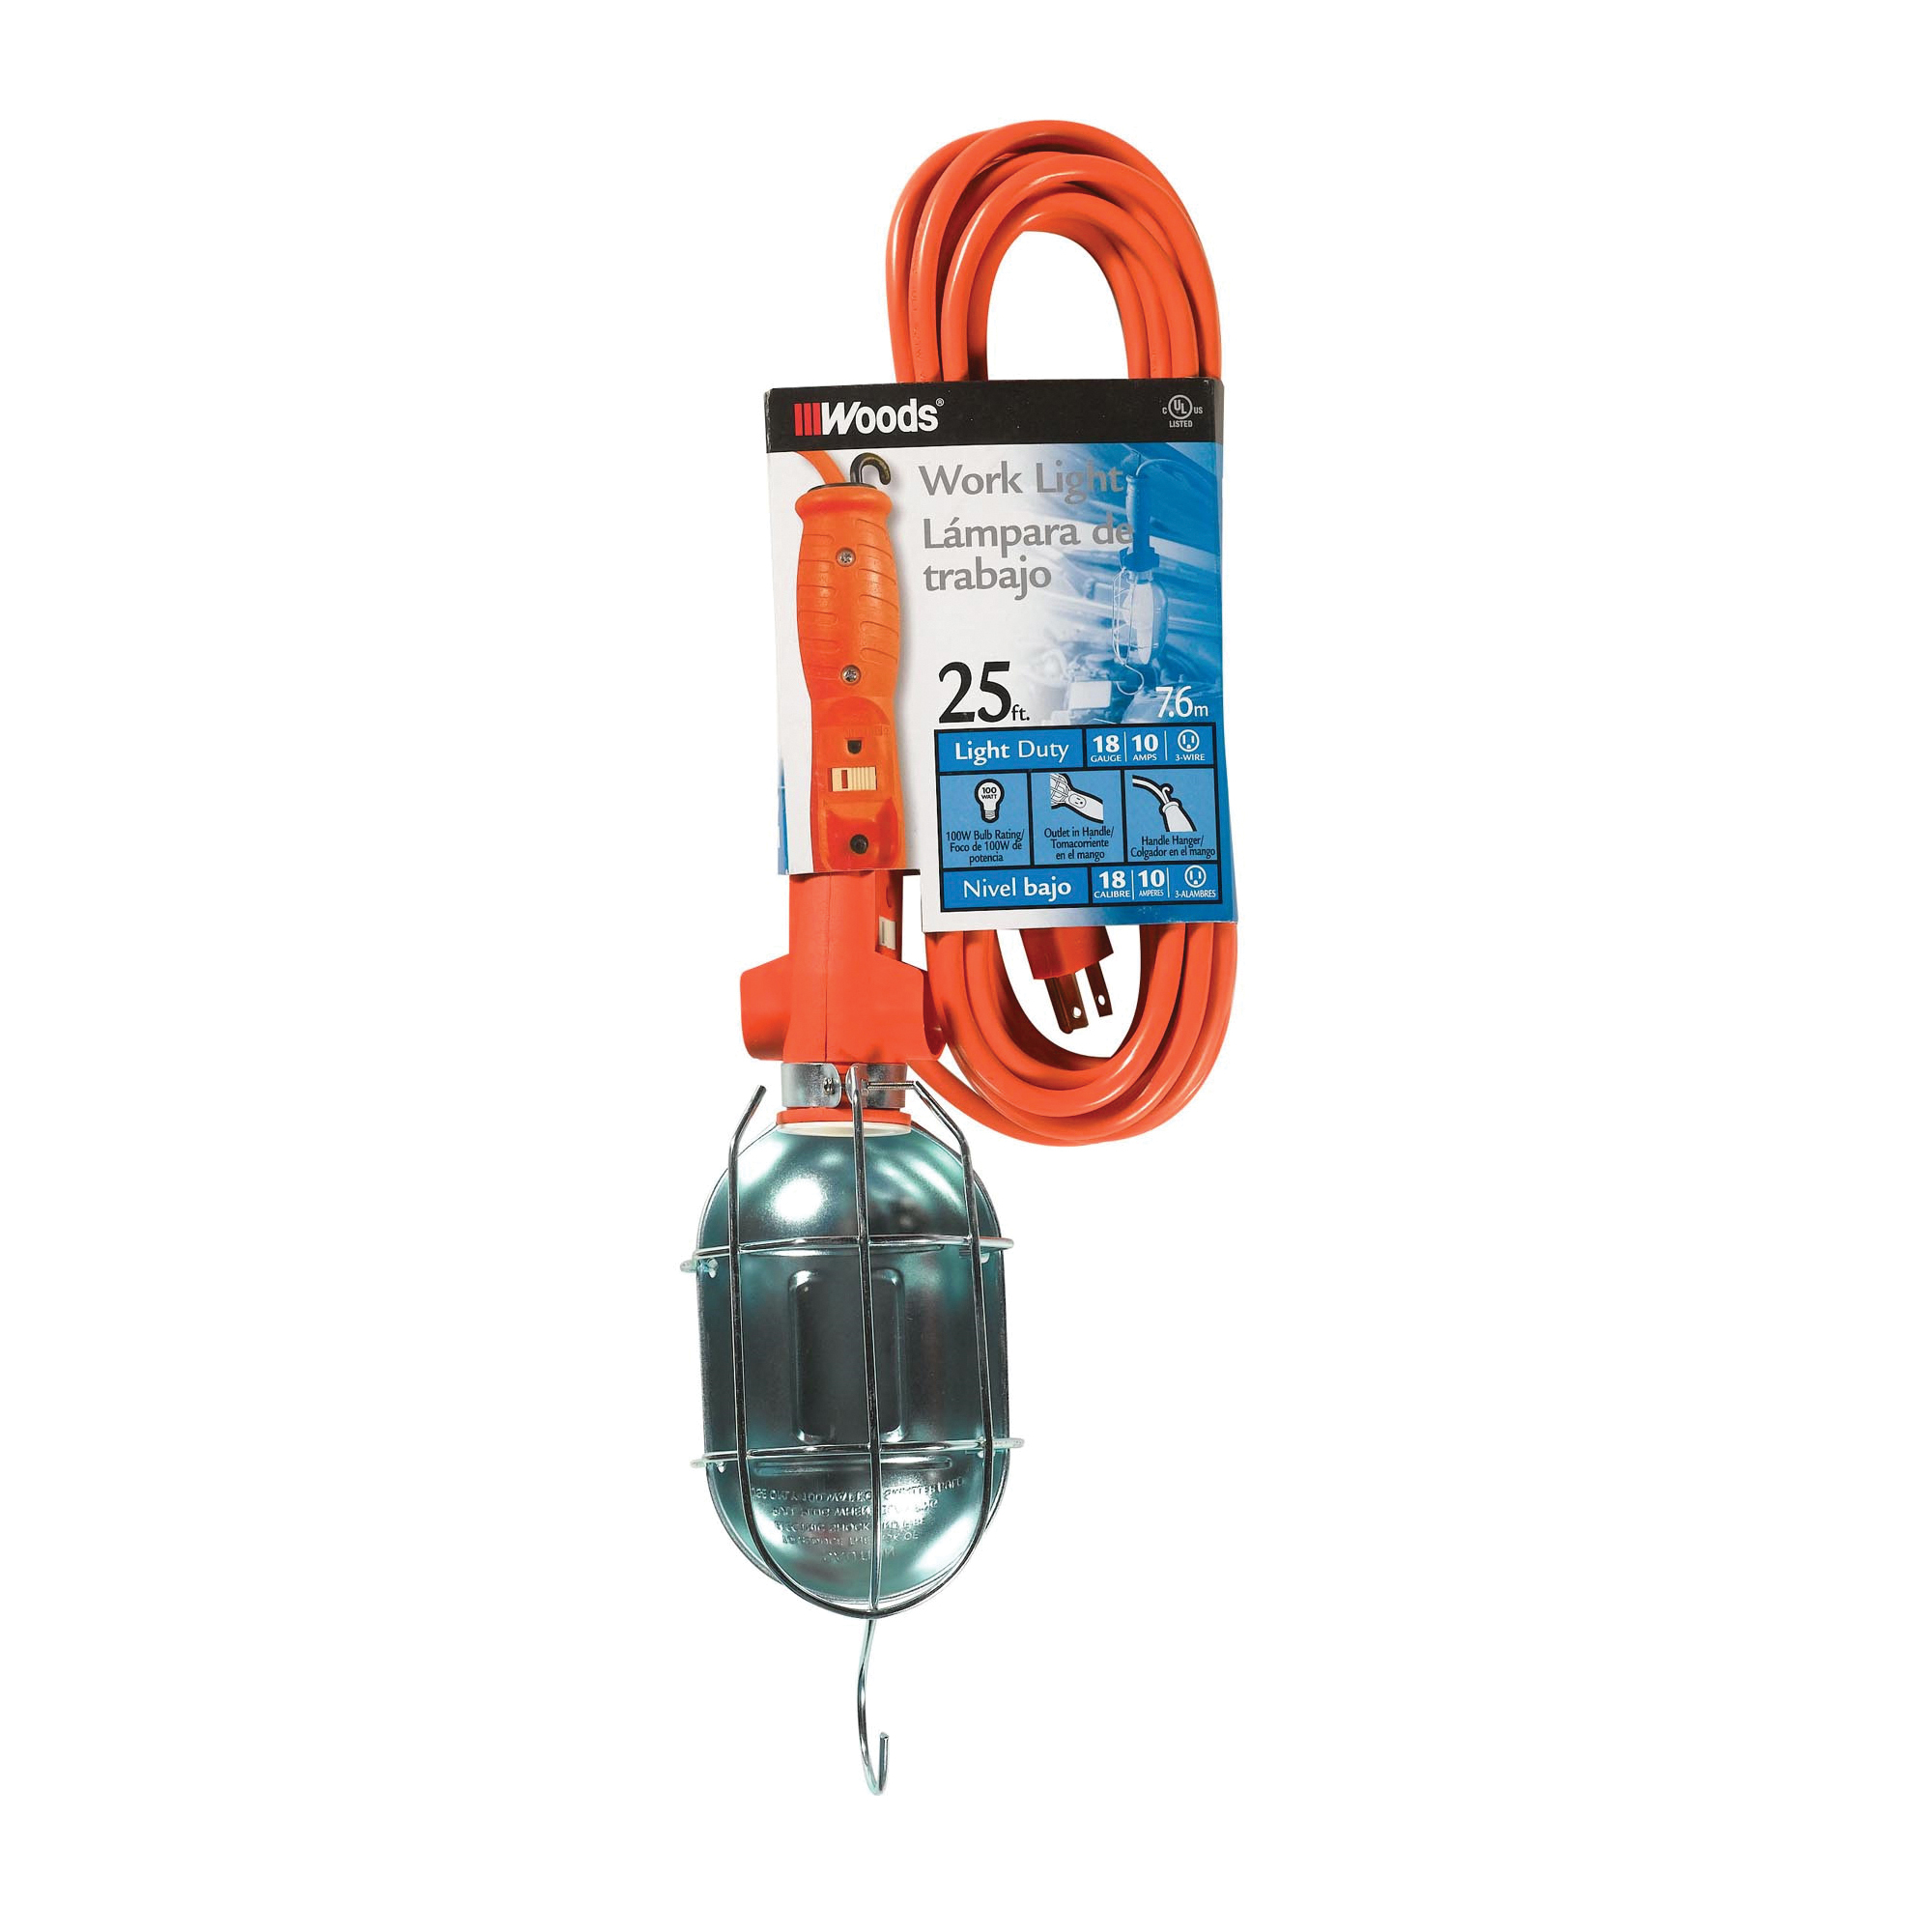 Picture of CCI 0681 Work Light with Outlet and Metal Guard, 9 A, 120 V, Orange